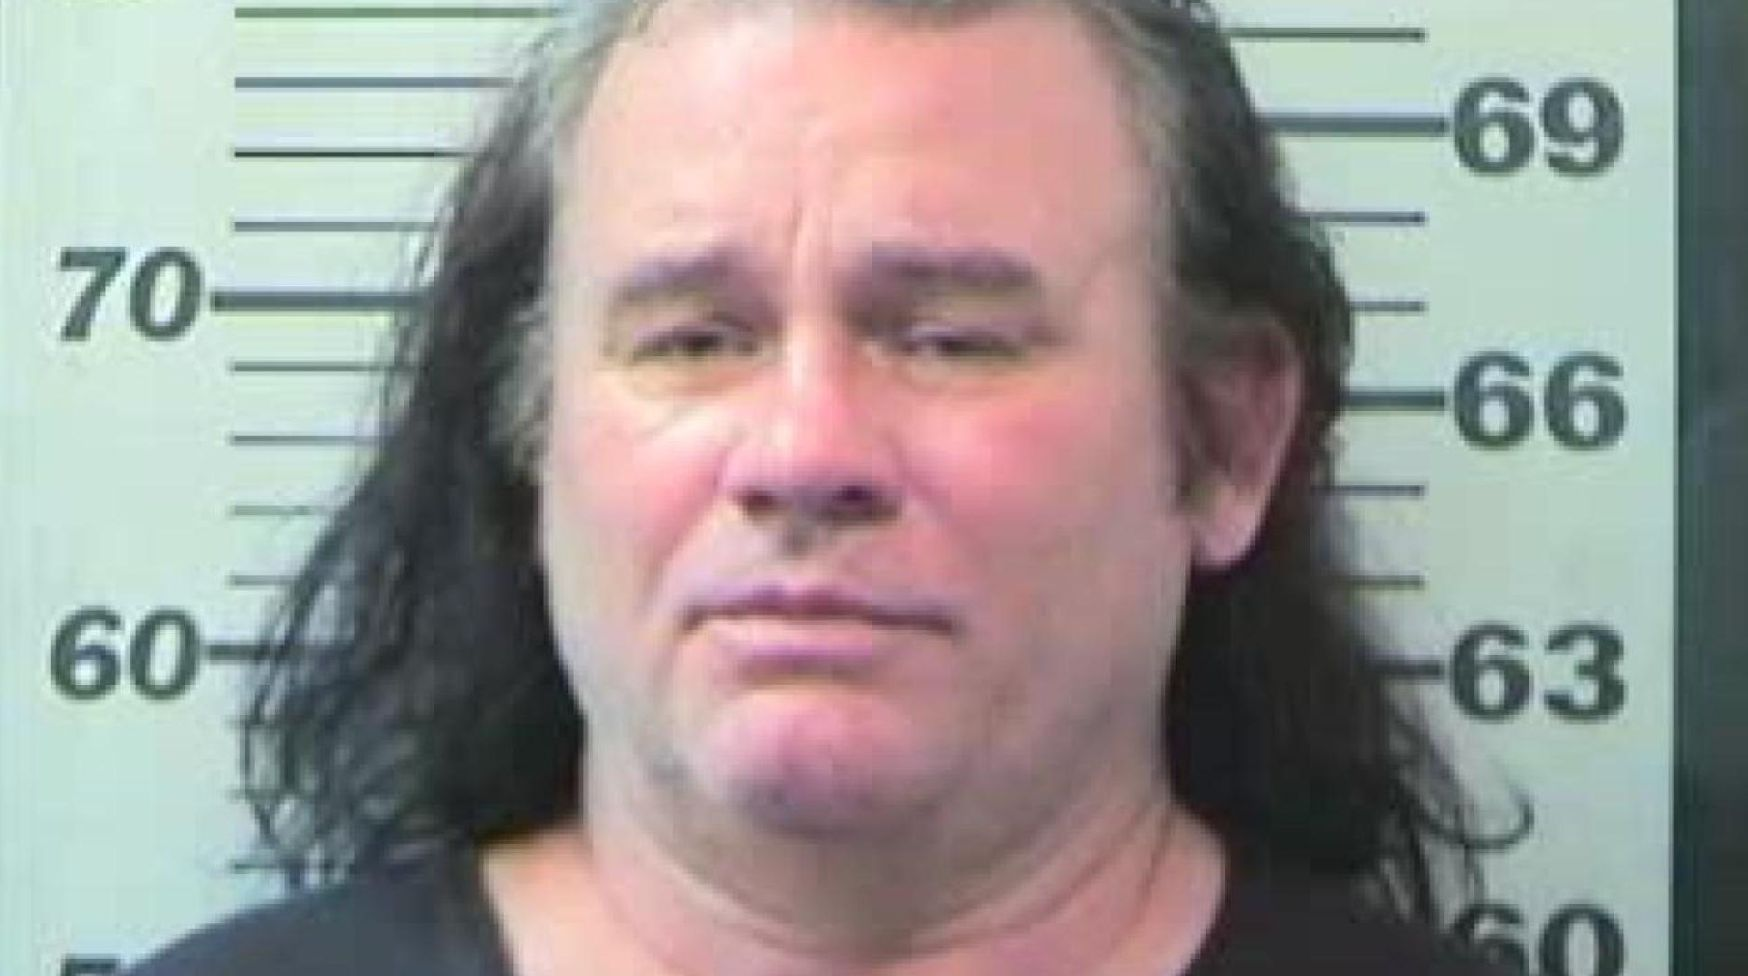 Kindergarten Cop' Villain Is Unrecognizable In Mugshot After